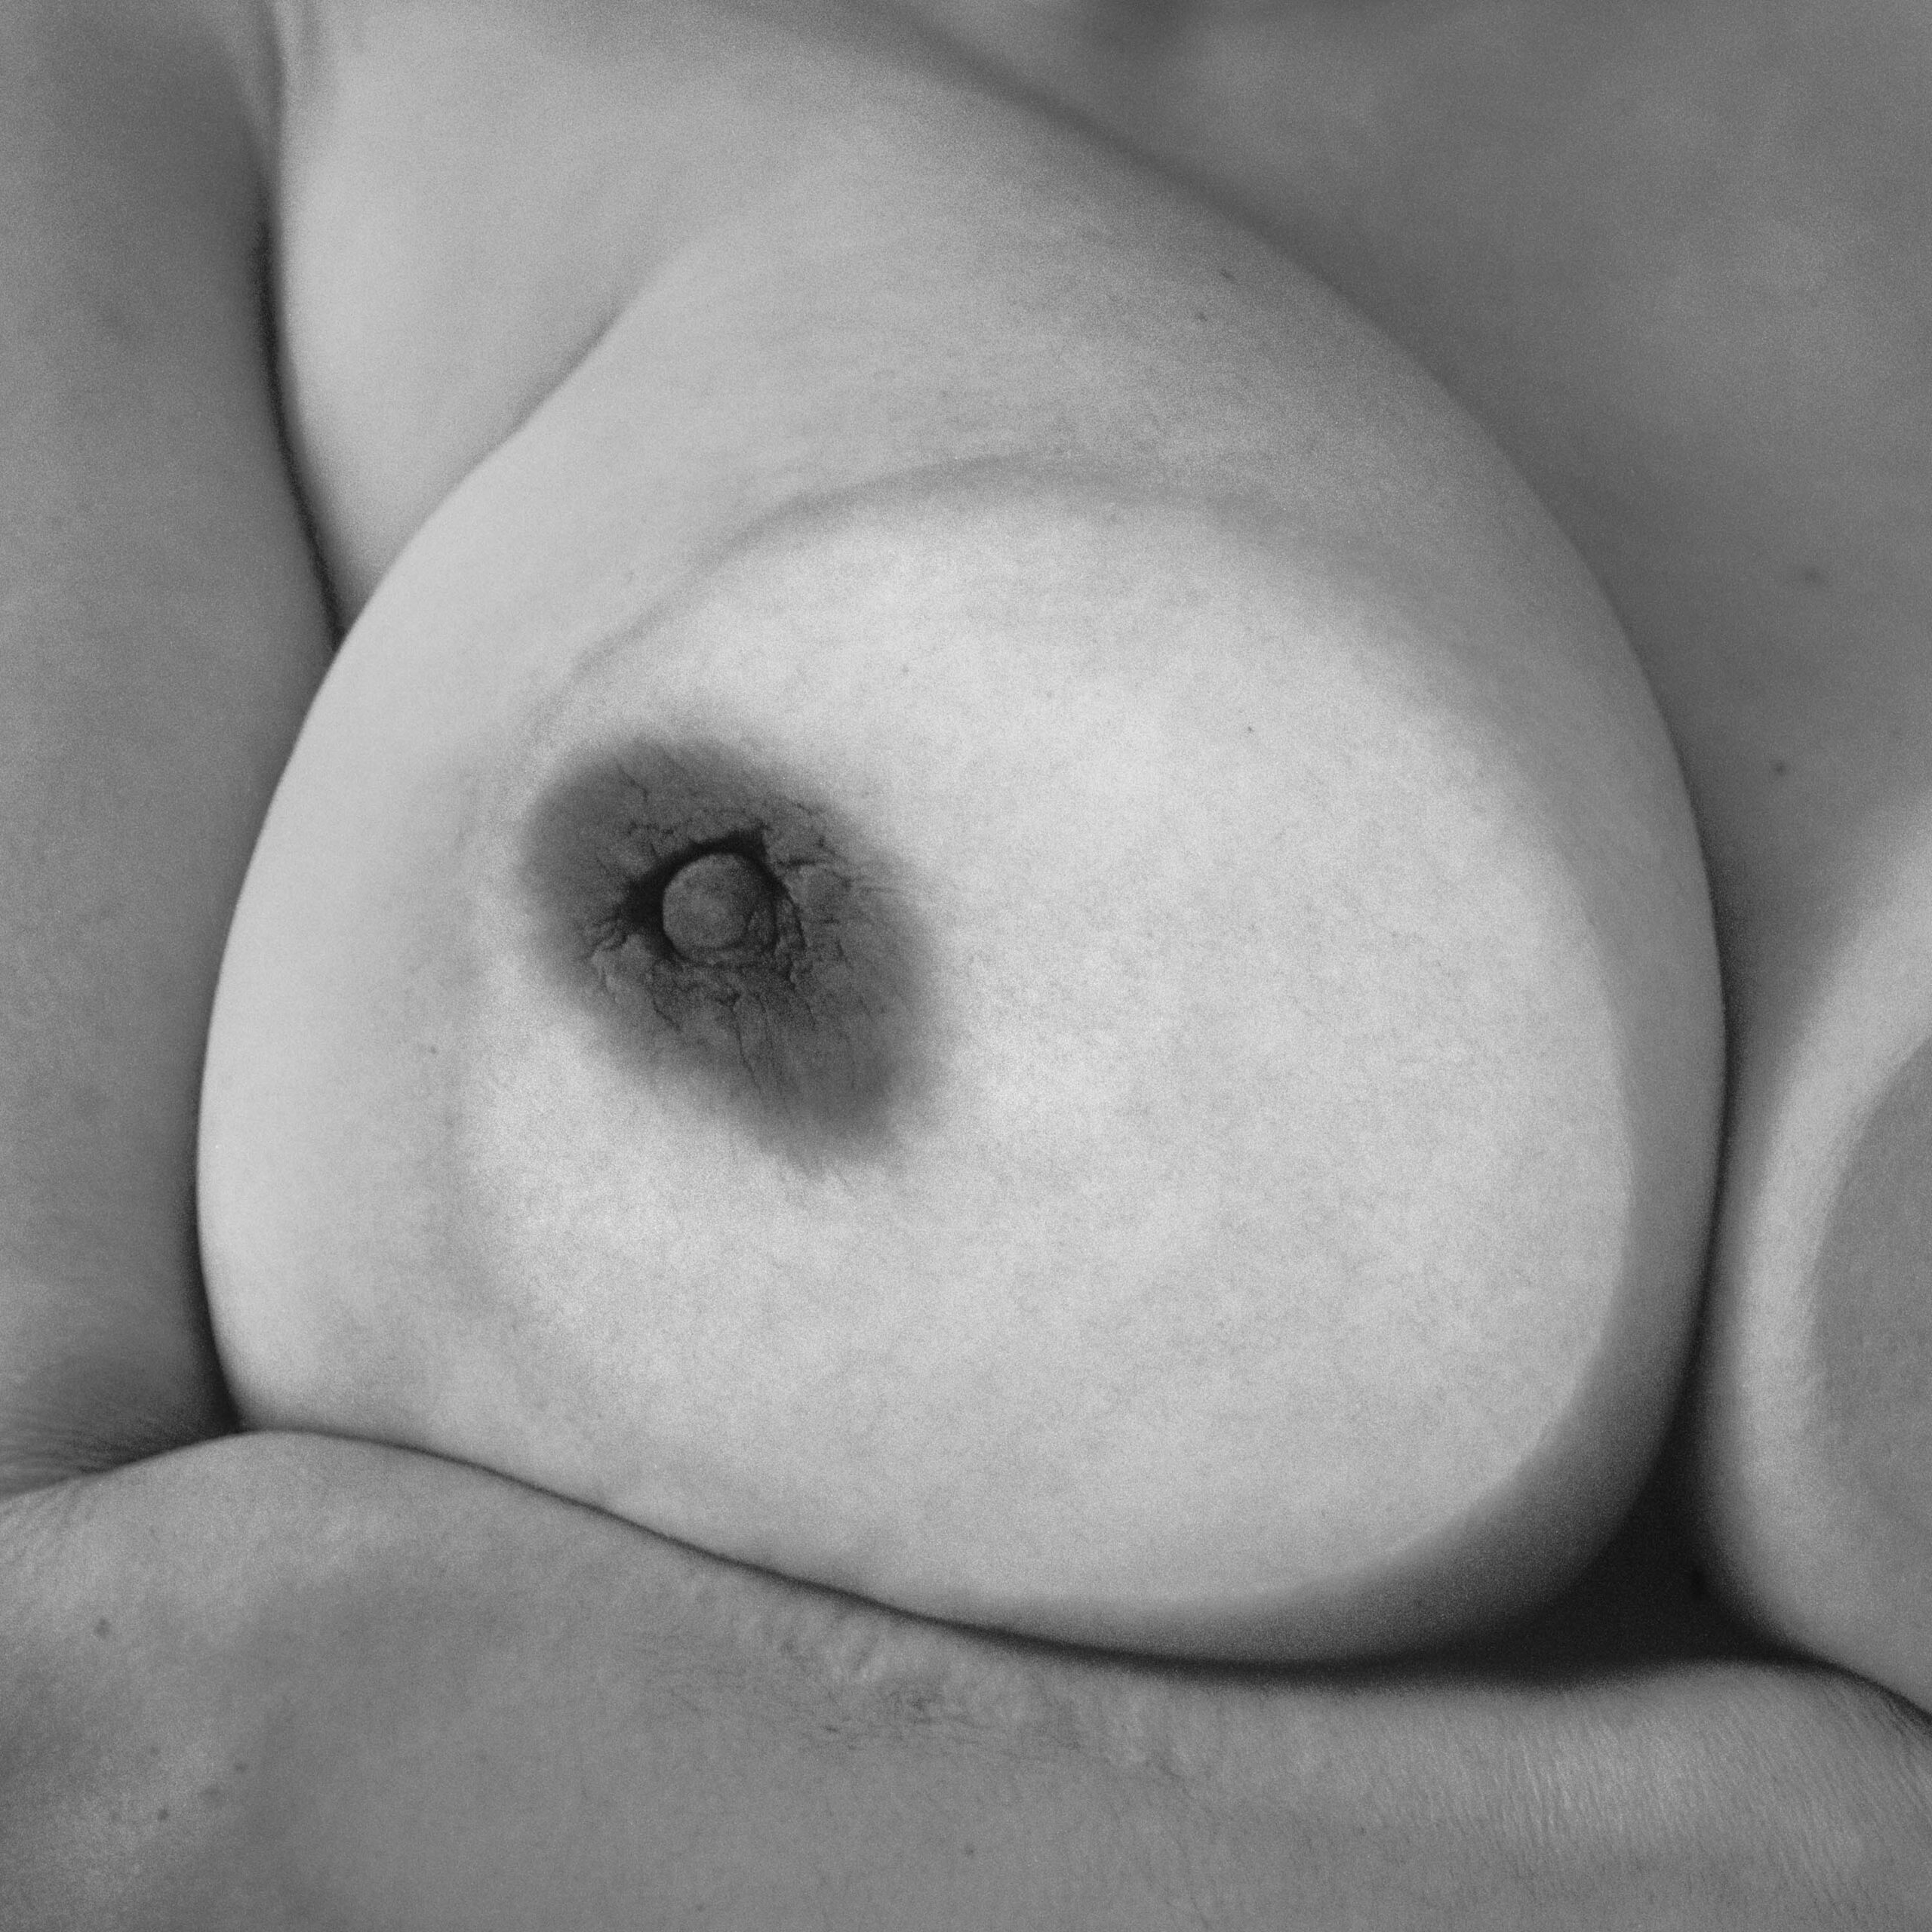 Single Breast and Arm